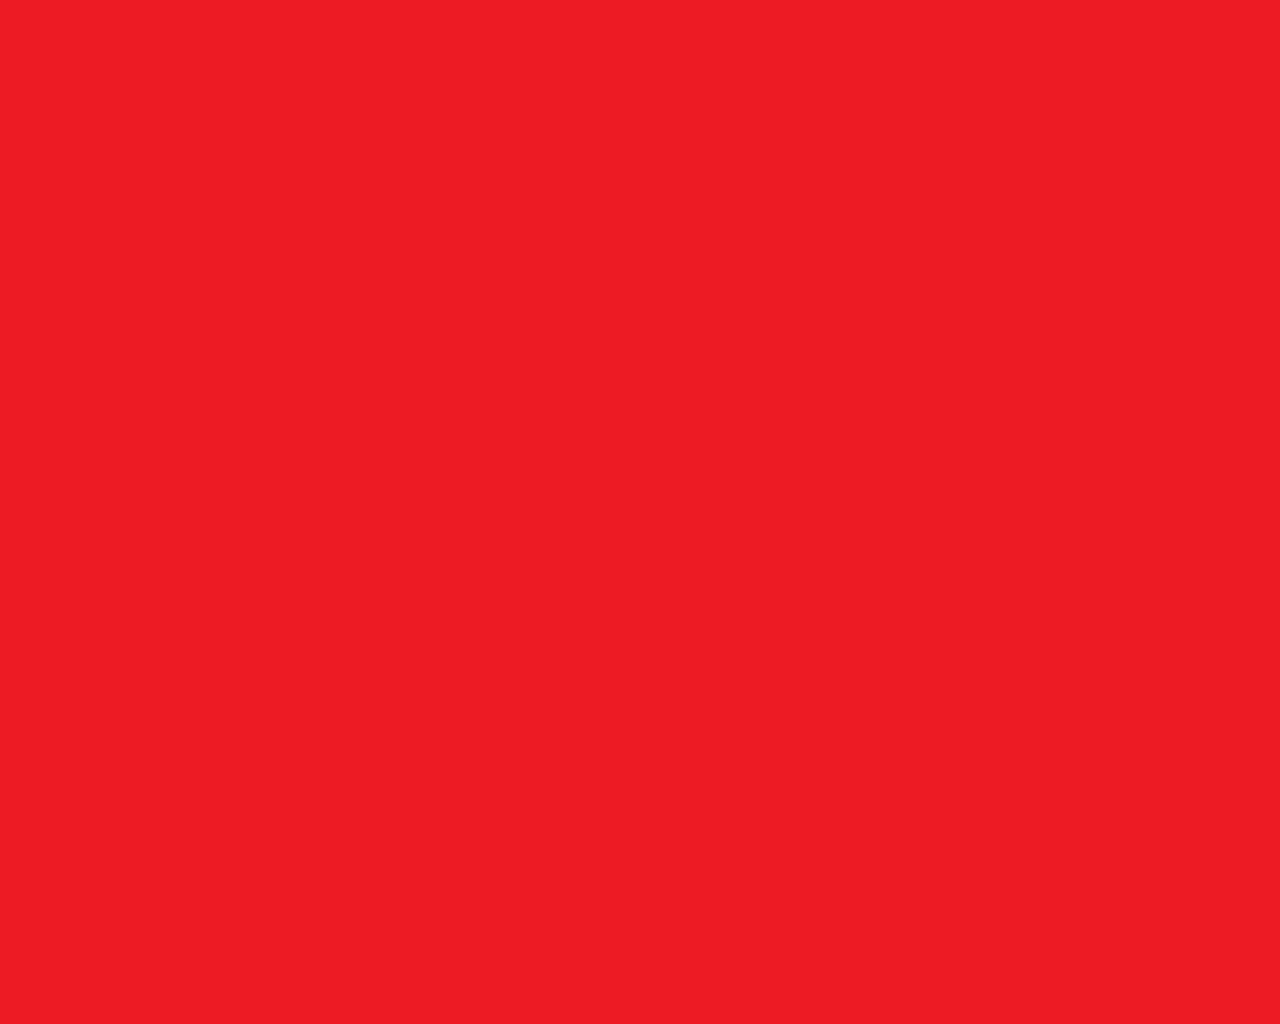 1280x1024 Red Pigment Solid Color Background